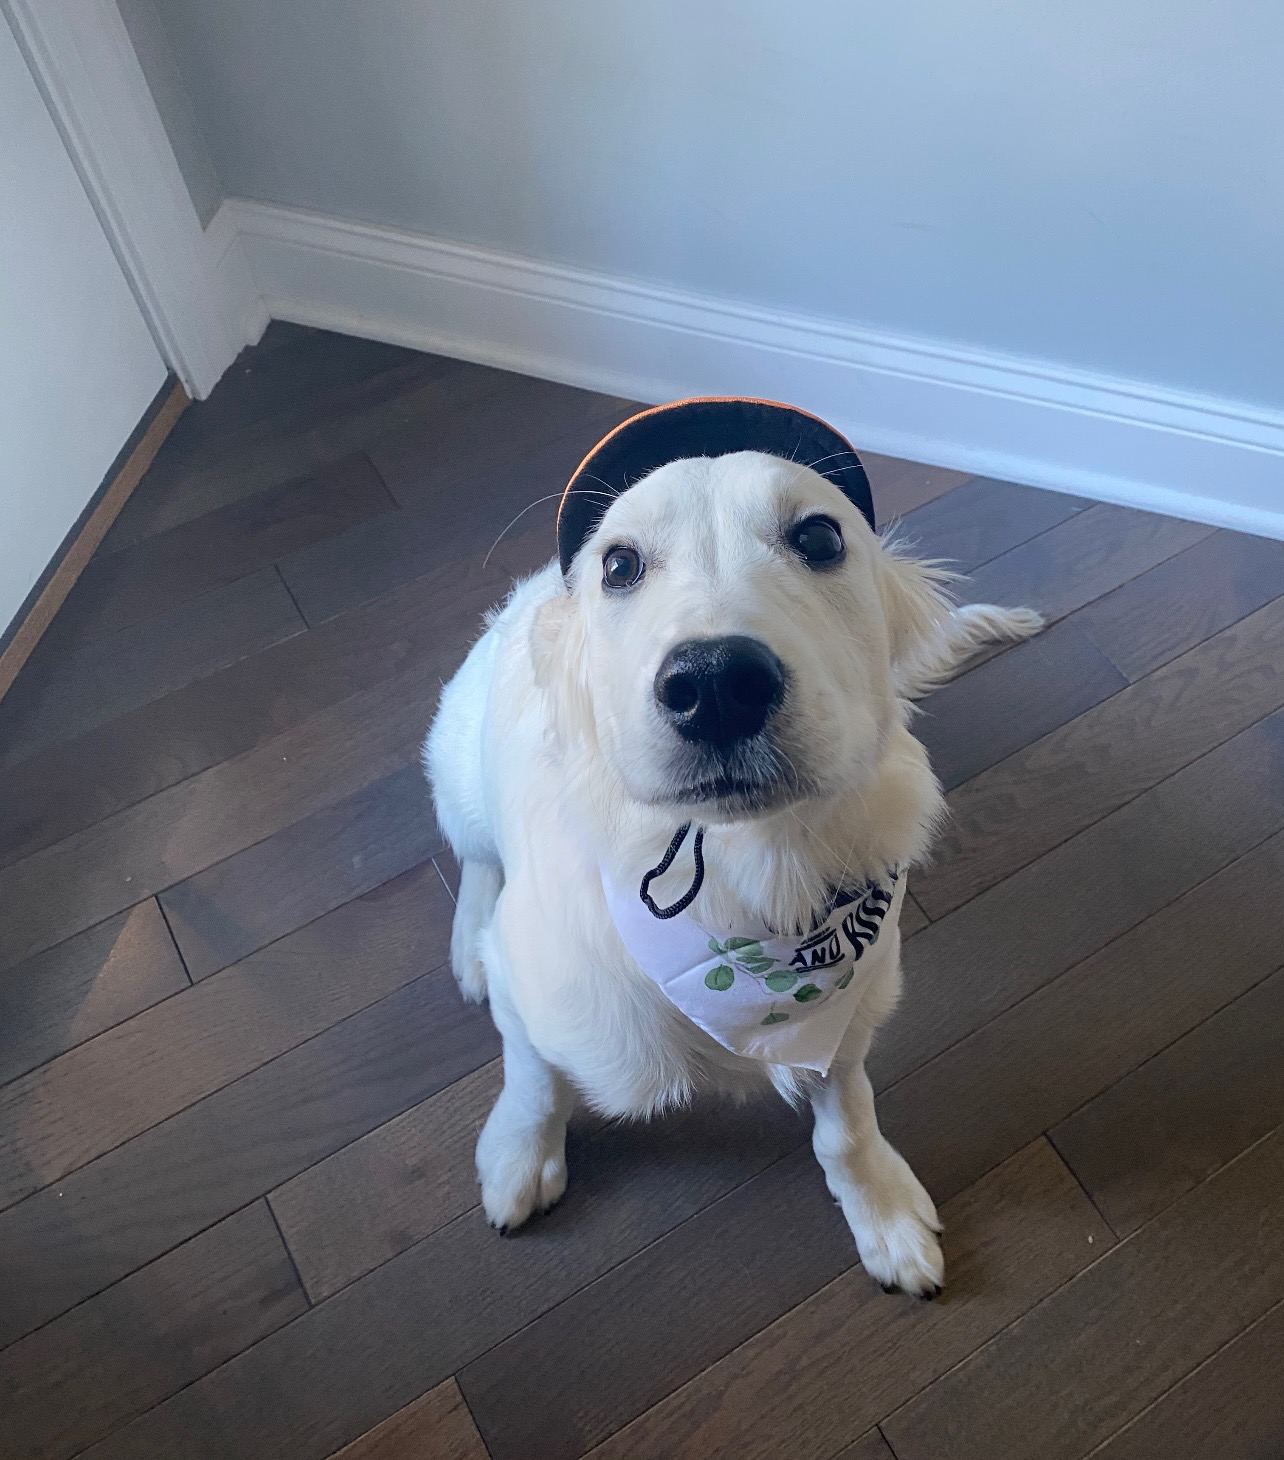 SU sophomore Mandy Good's English golden retriever poses for a photo wearing a hat and bandana.